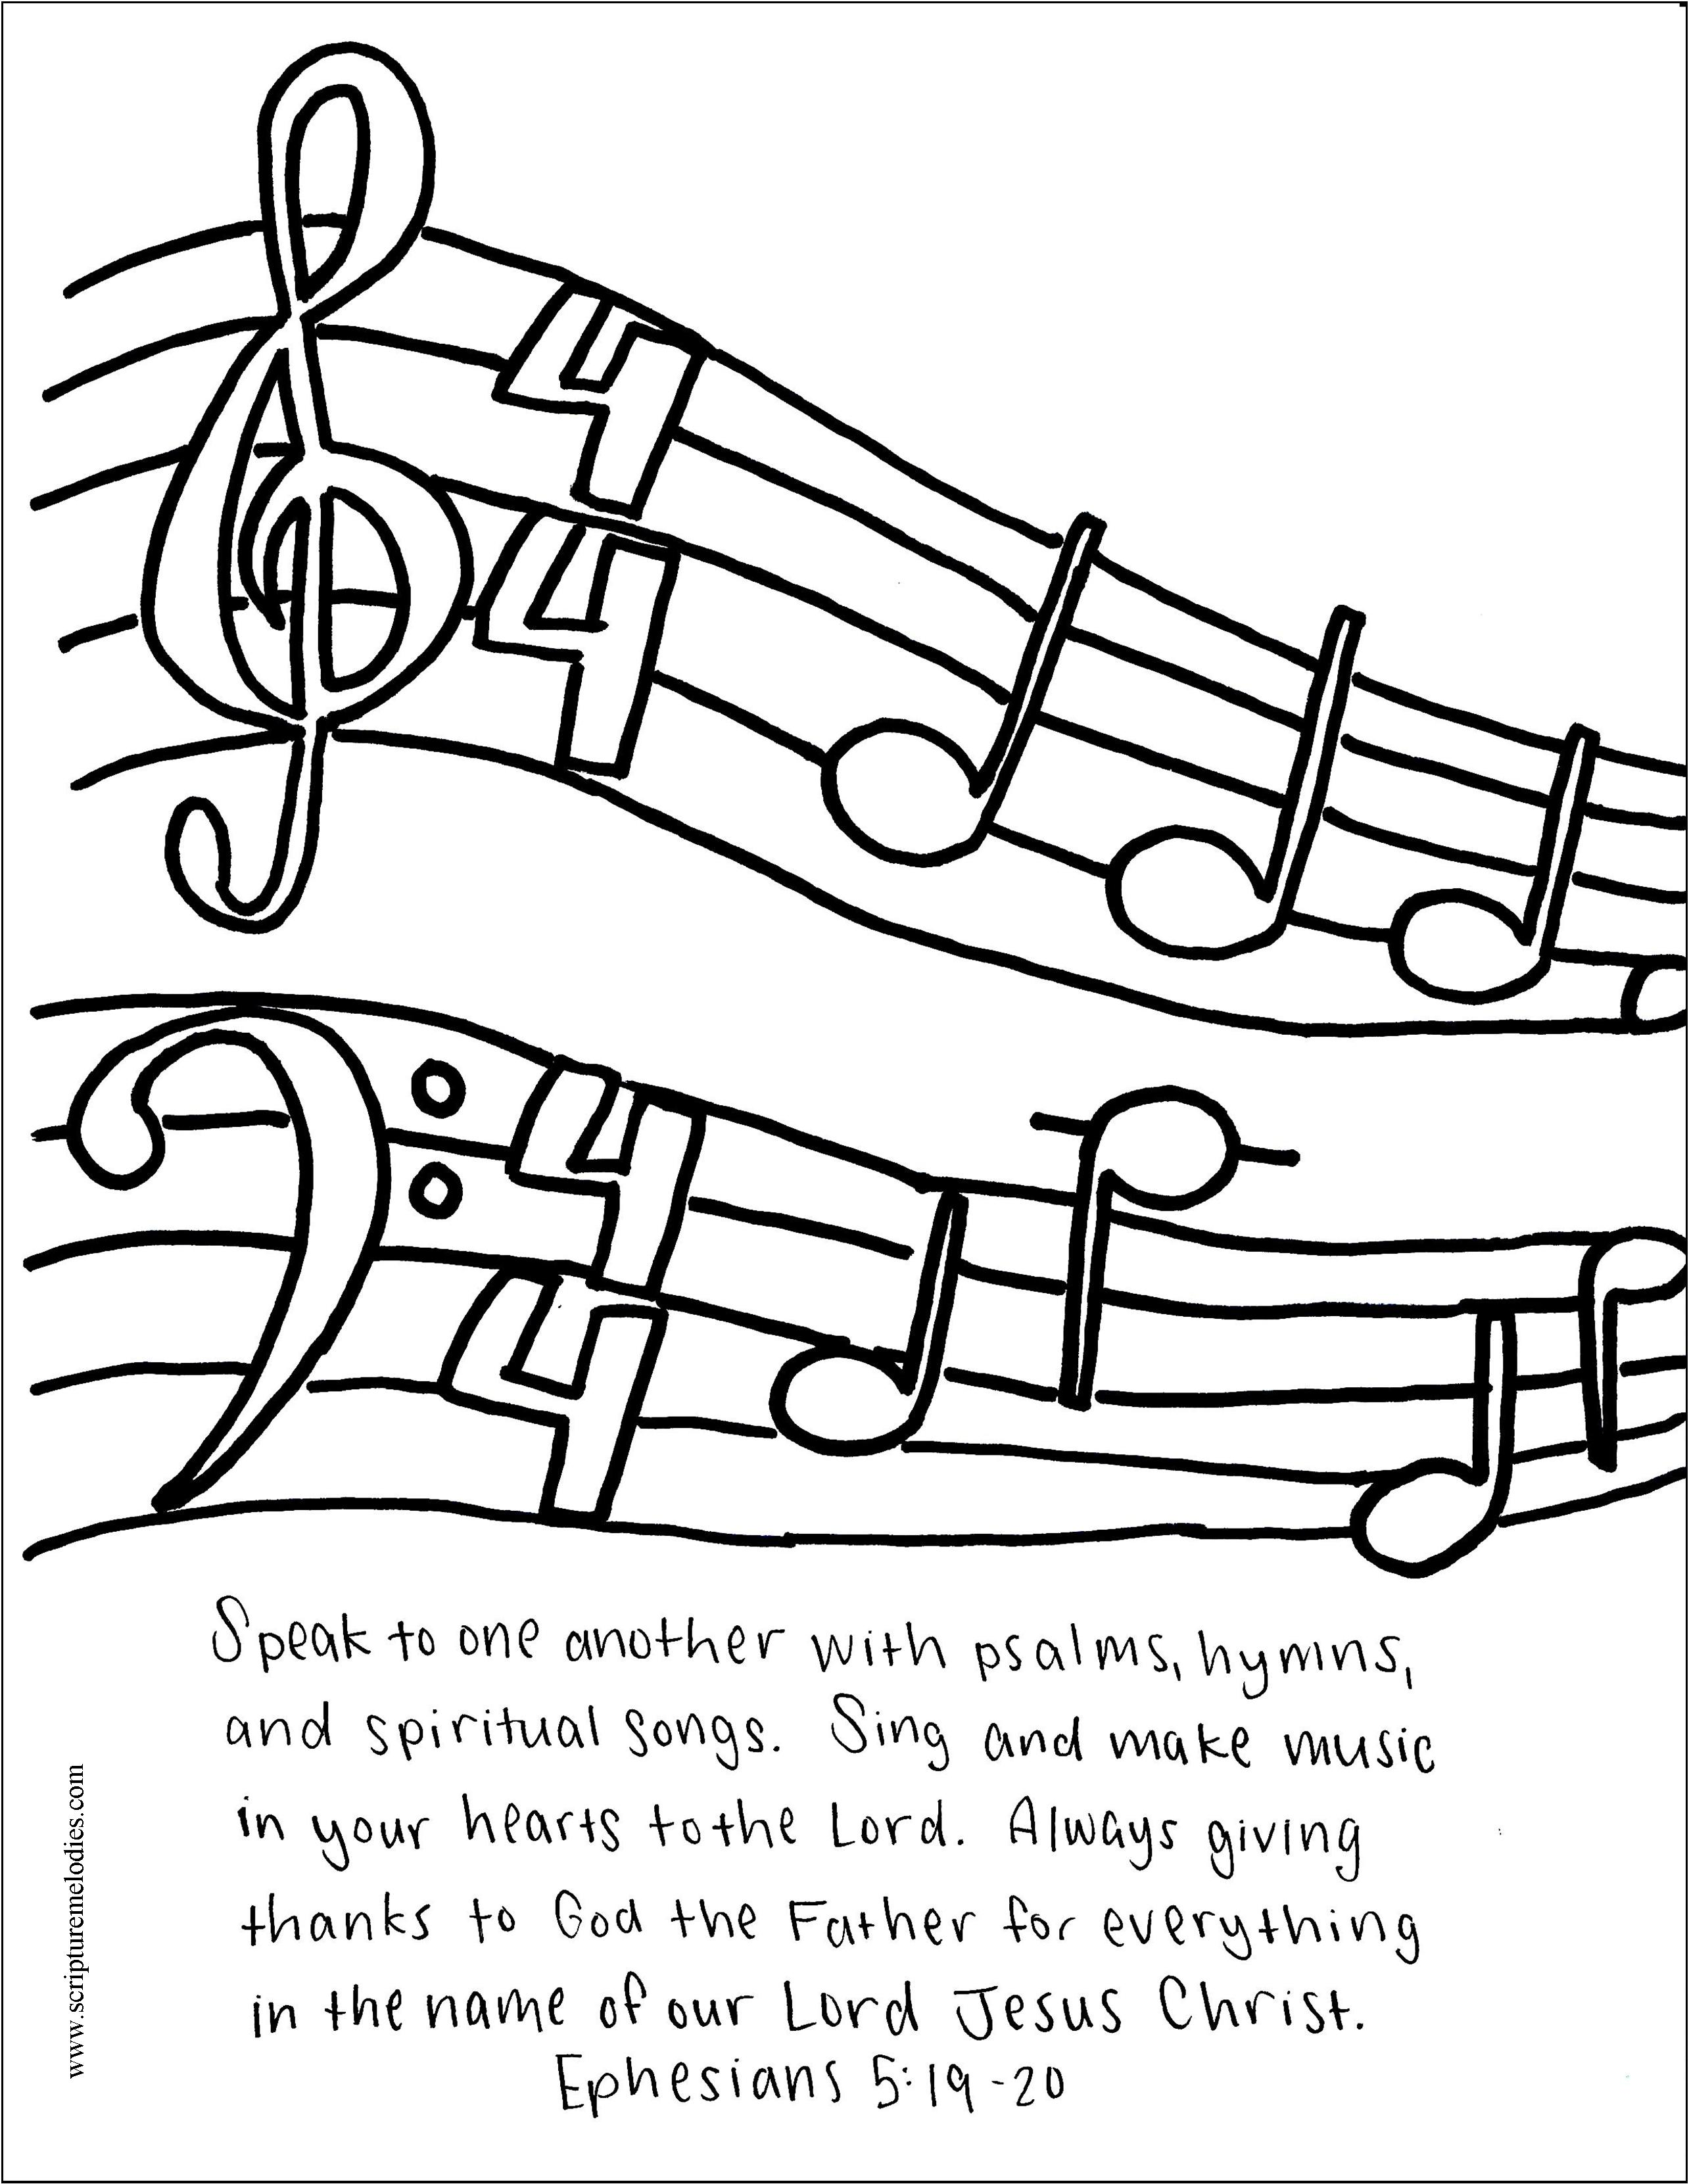 coloring bible esv 32 psalm 23 coloring page in 2020 bible coloring pages bible coloring esv